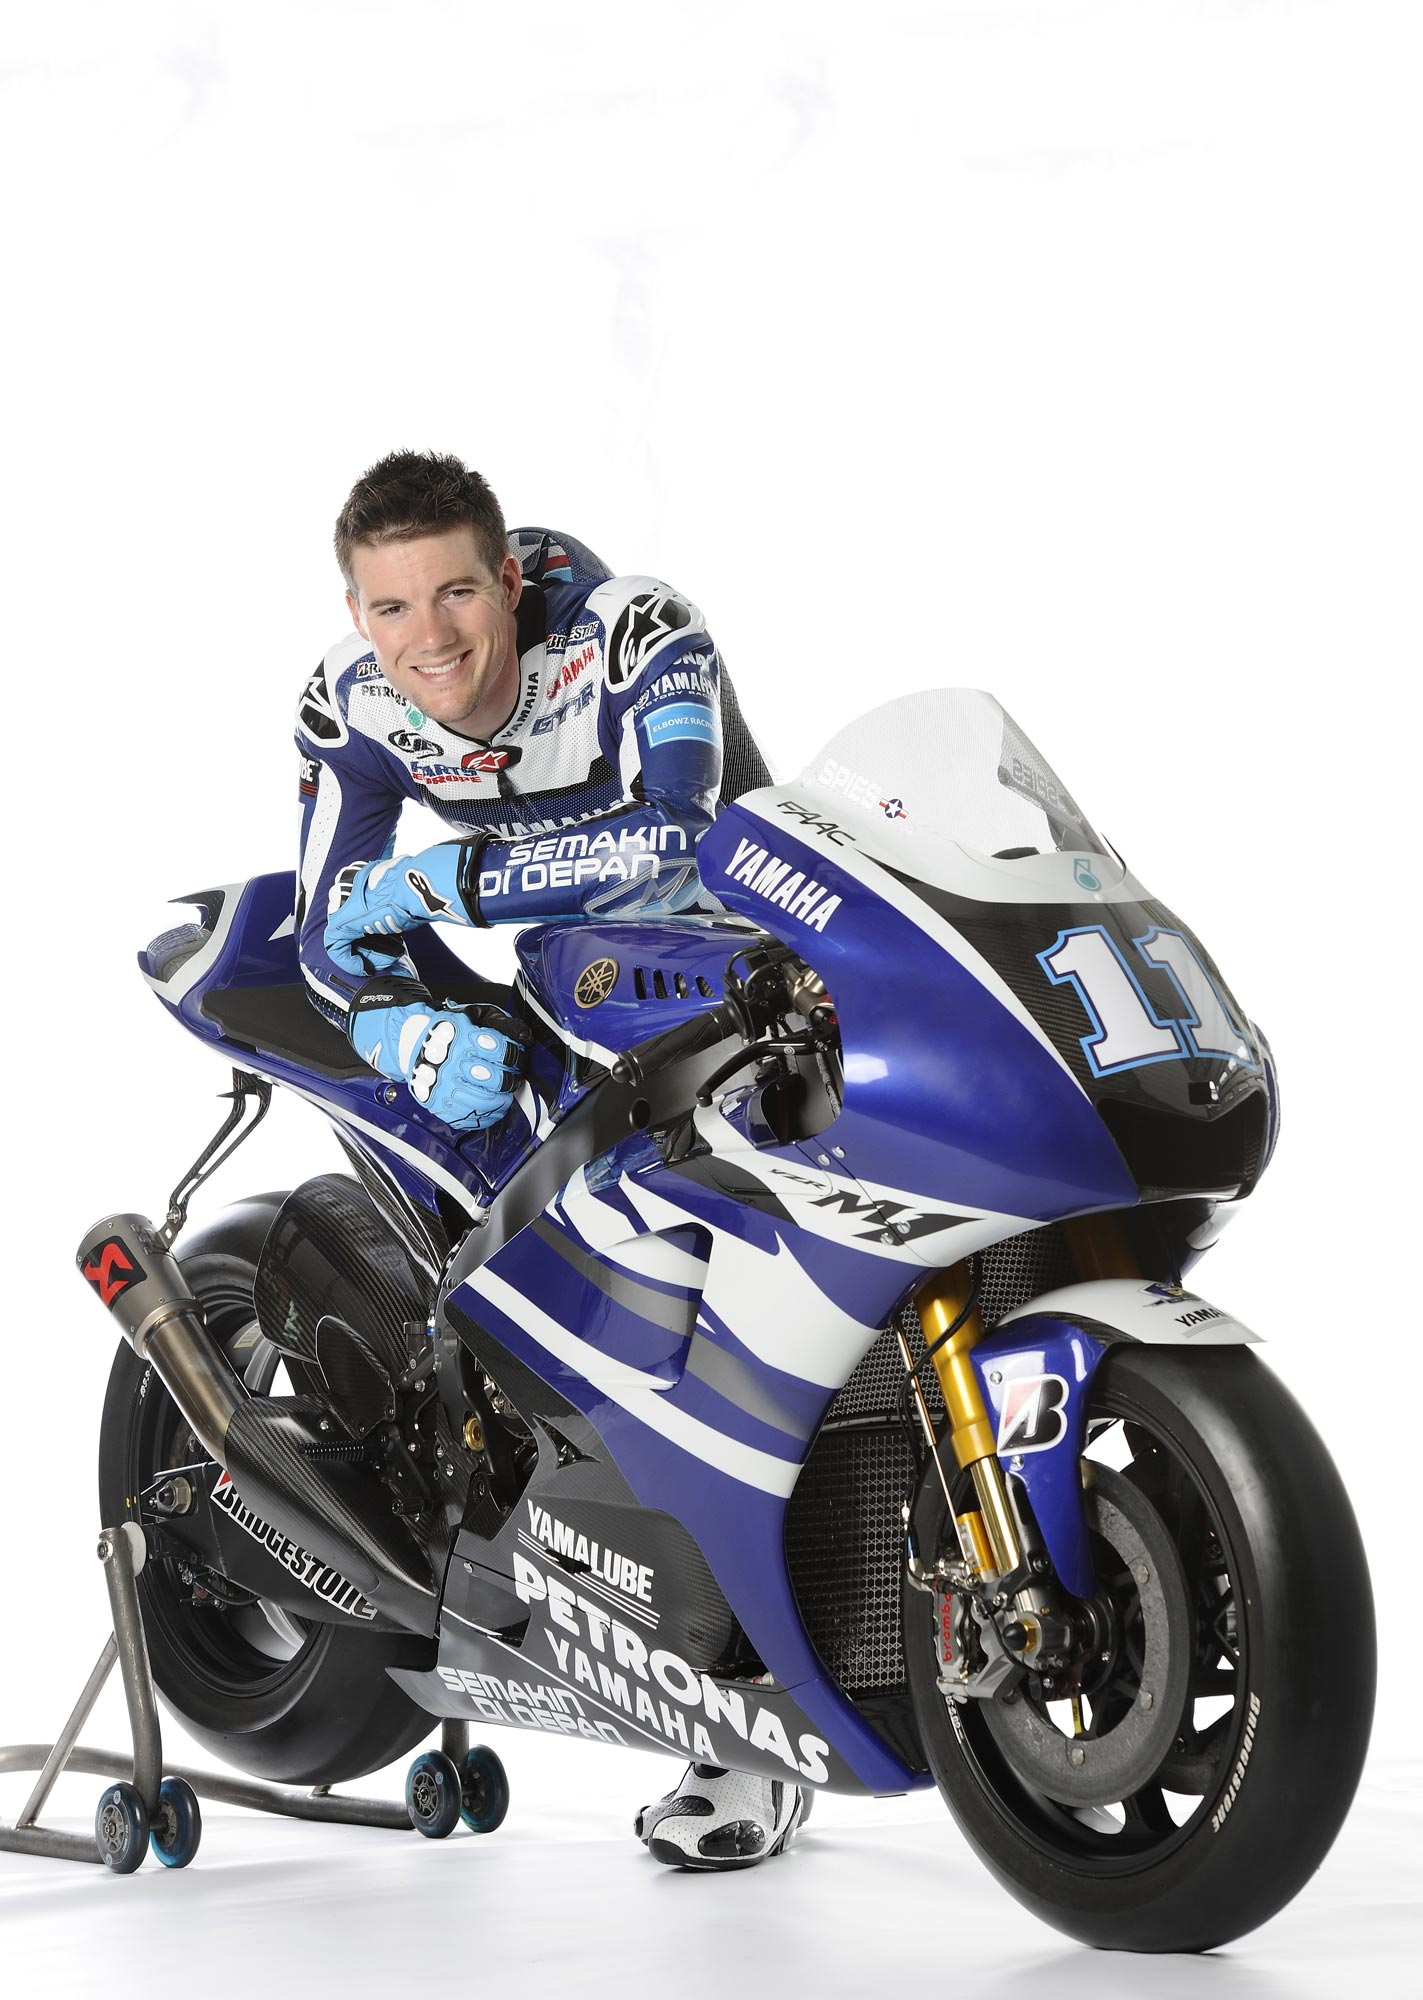 Yamaha 39 s 2011 motogp livery unveiling asphalt rubber for Yamaha racing team